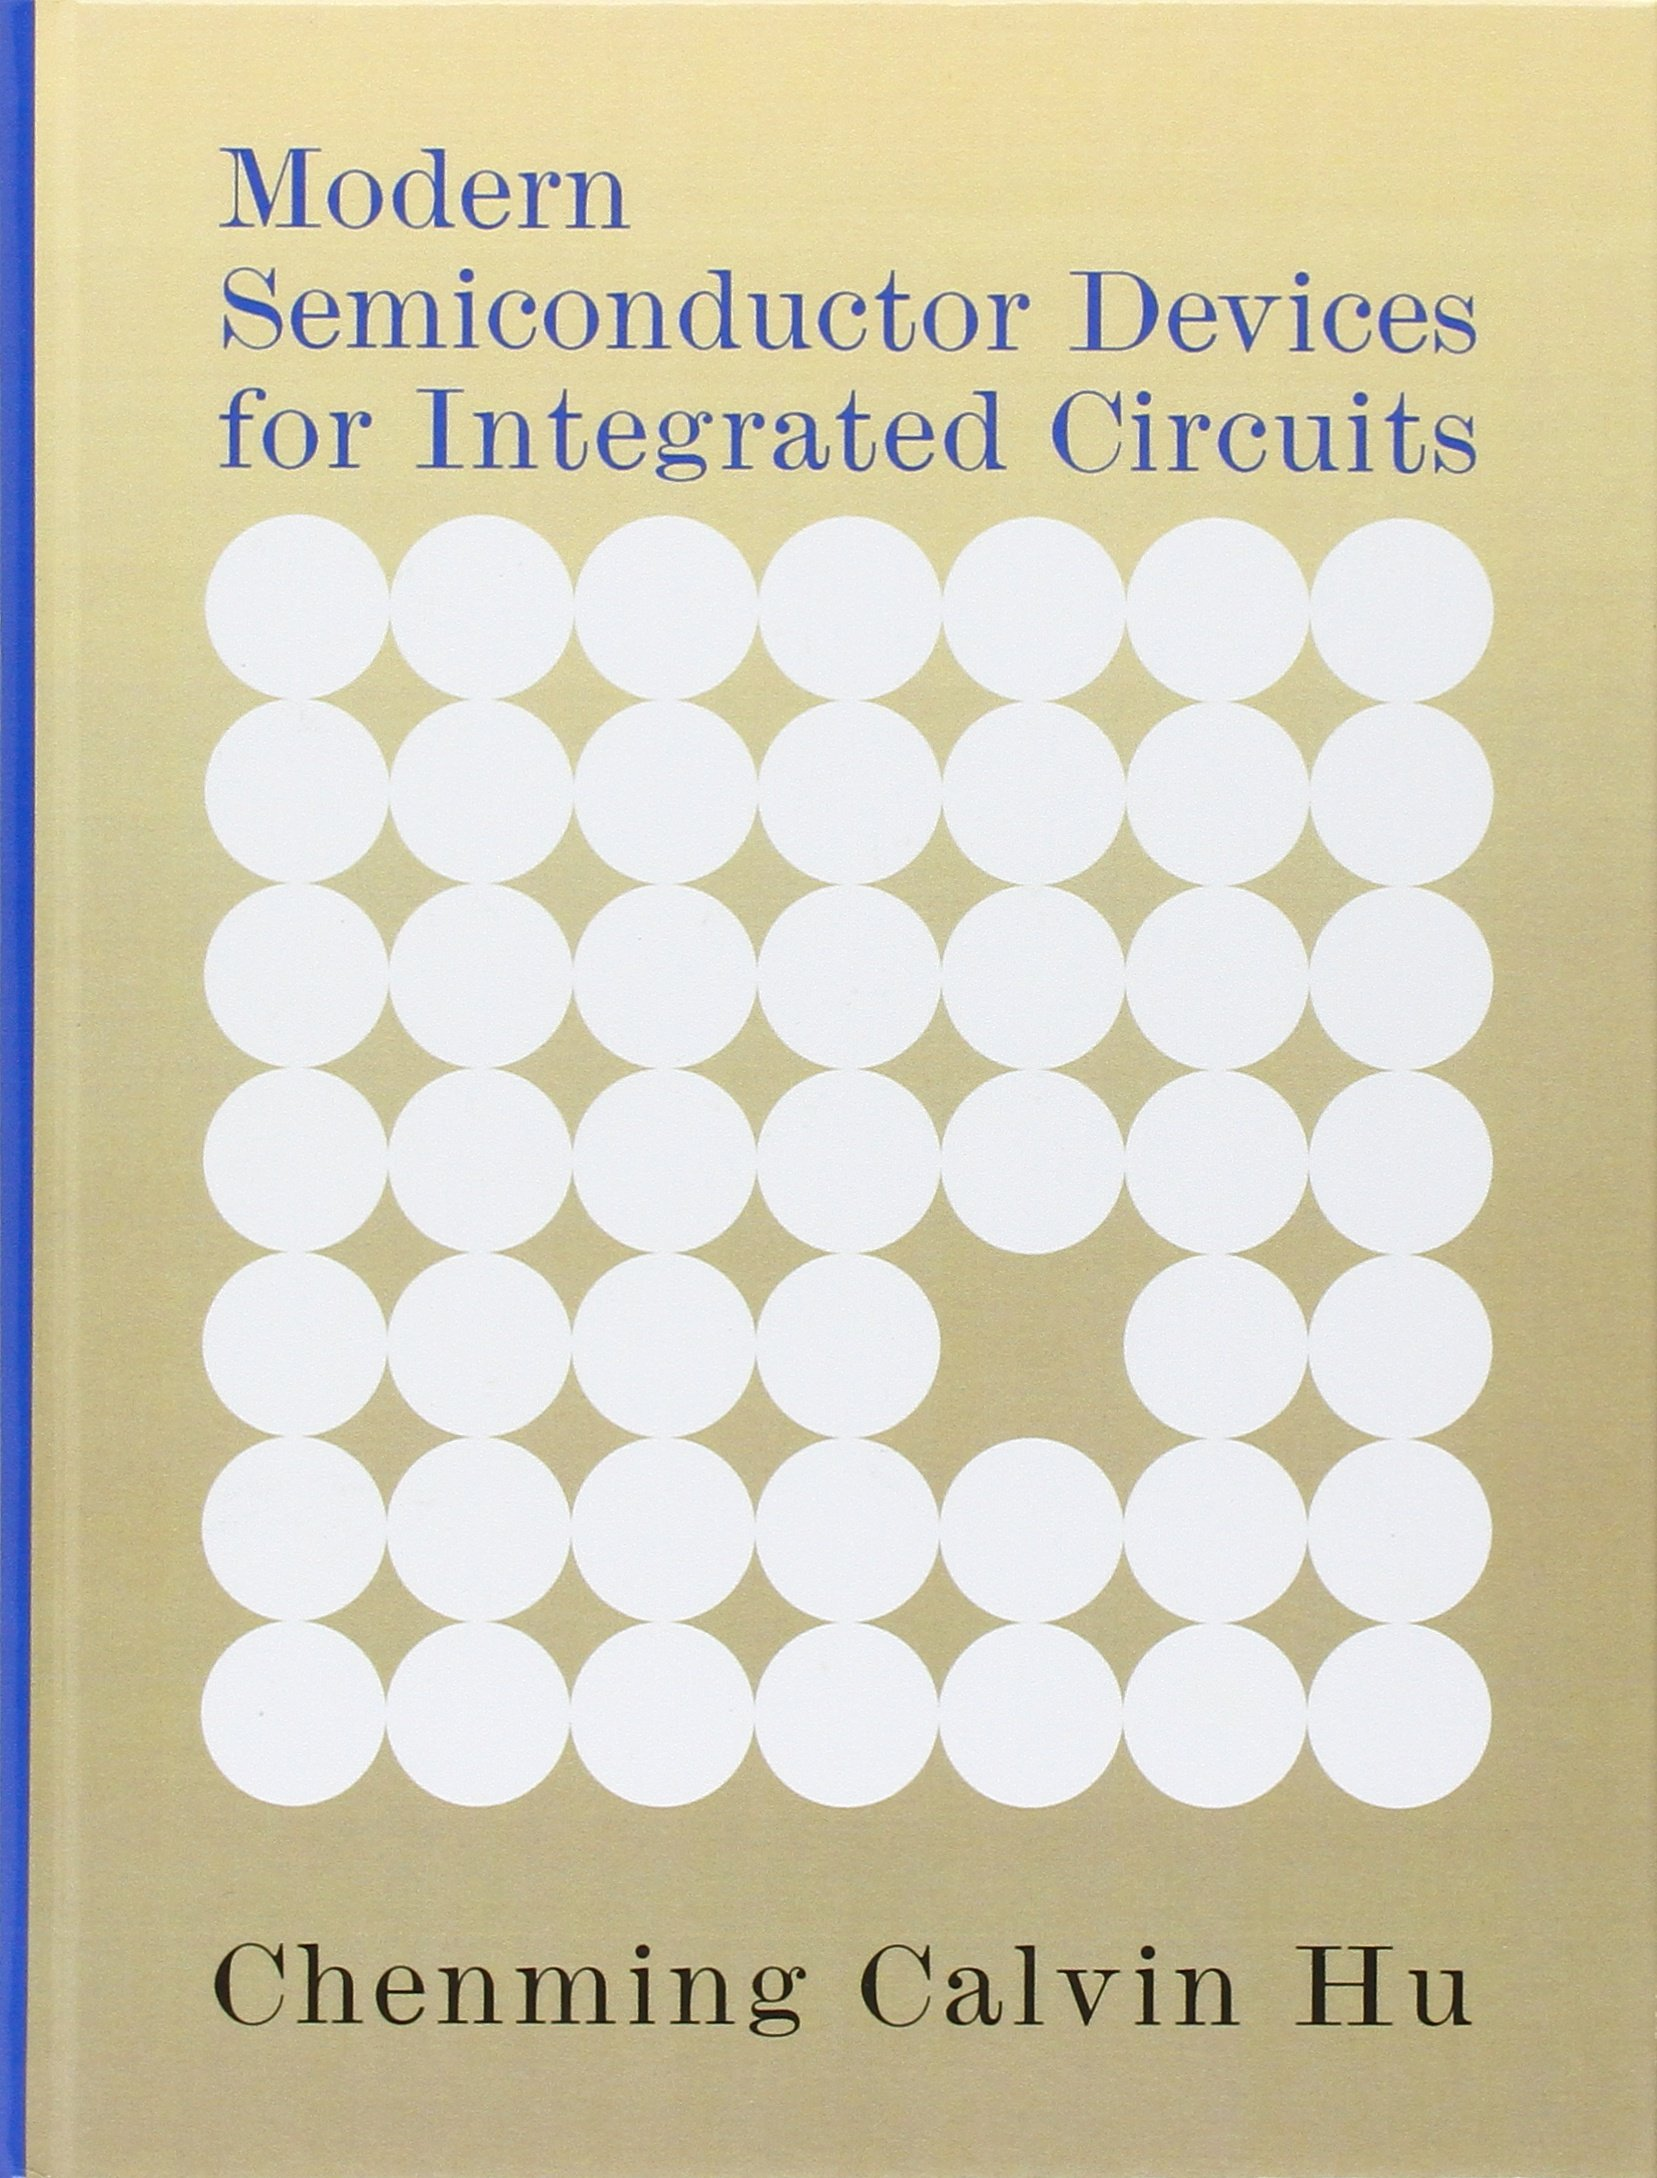 Buy modern semiconductor devices for integrated circuits book online buy modern semiconductor devices for integrated circuits book online at low prices in india modern semiconductor devices for integrated circuits reviews fandeluxe Images